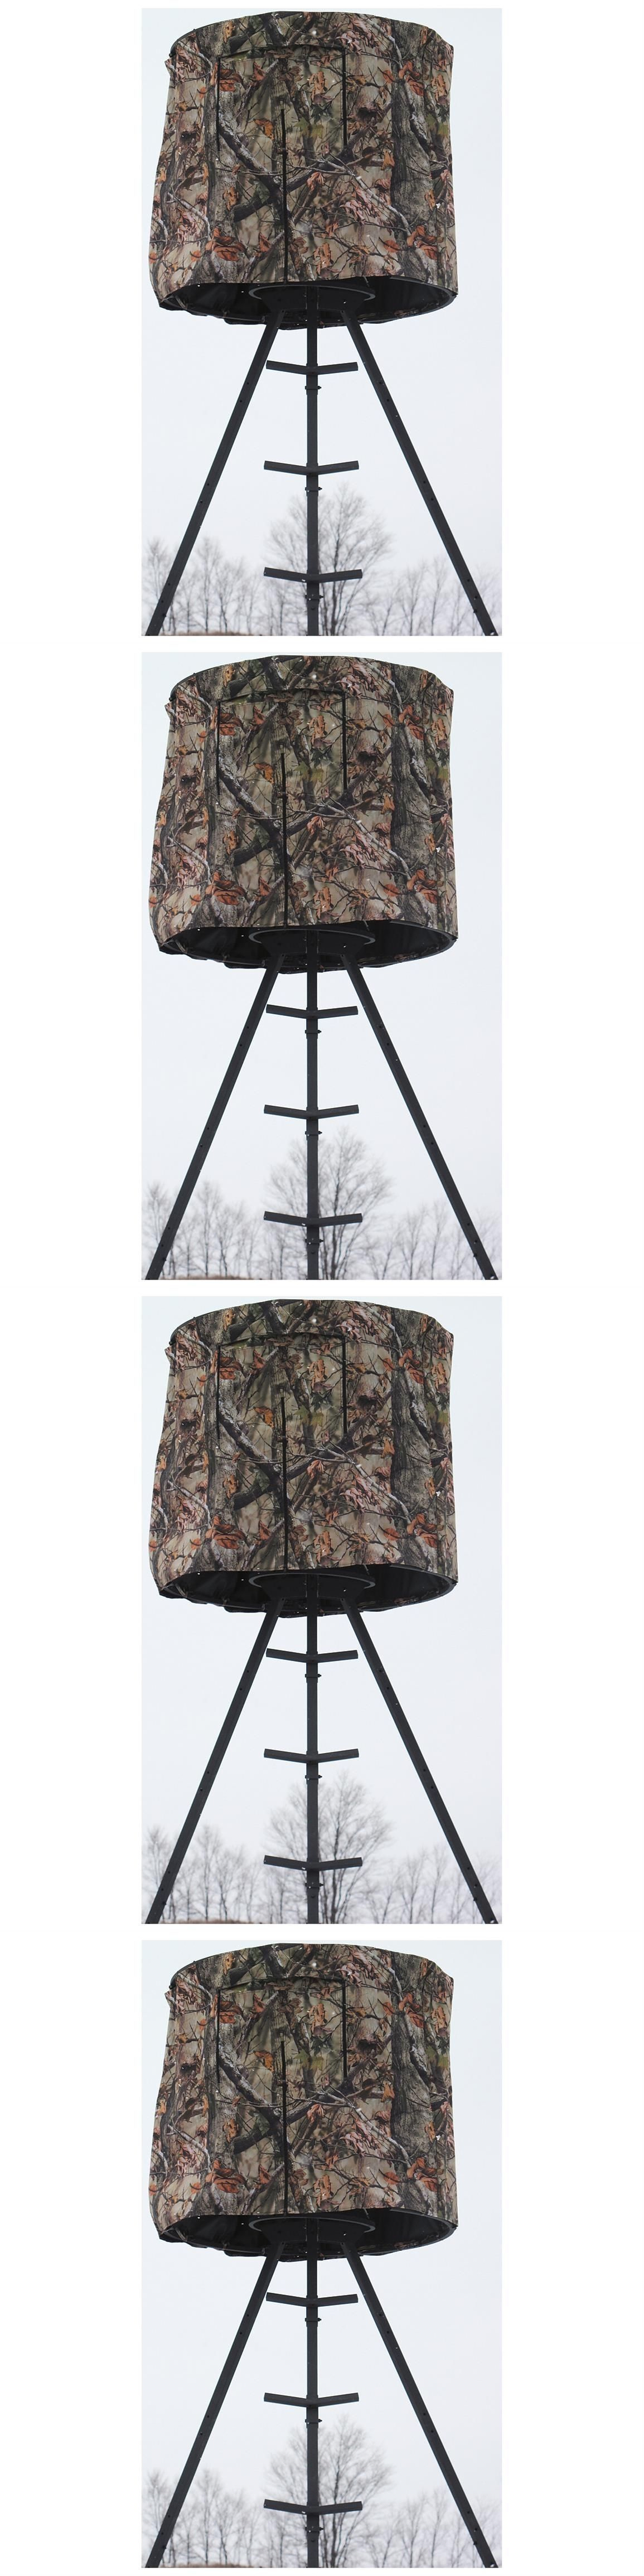 Blind and Tree Stand Accessories 177912 Tripod Deer Stand